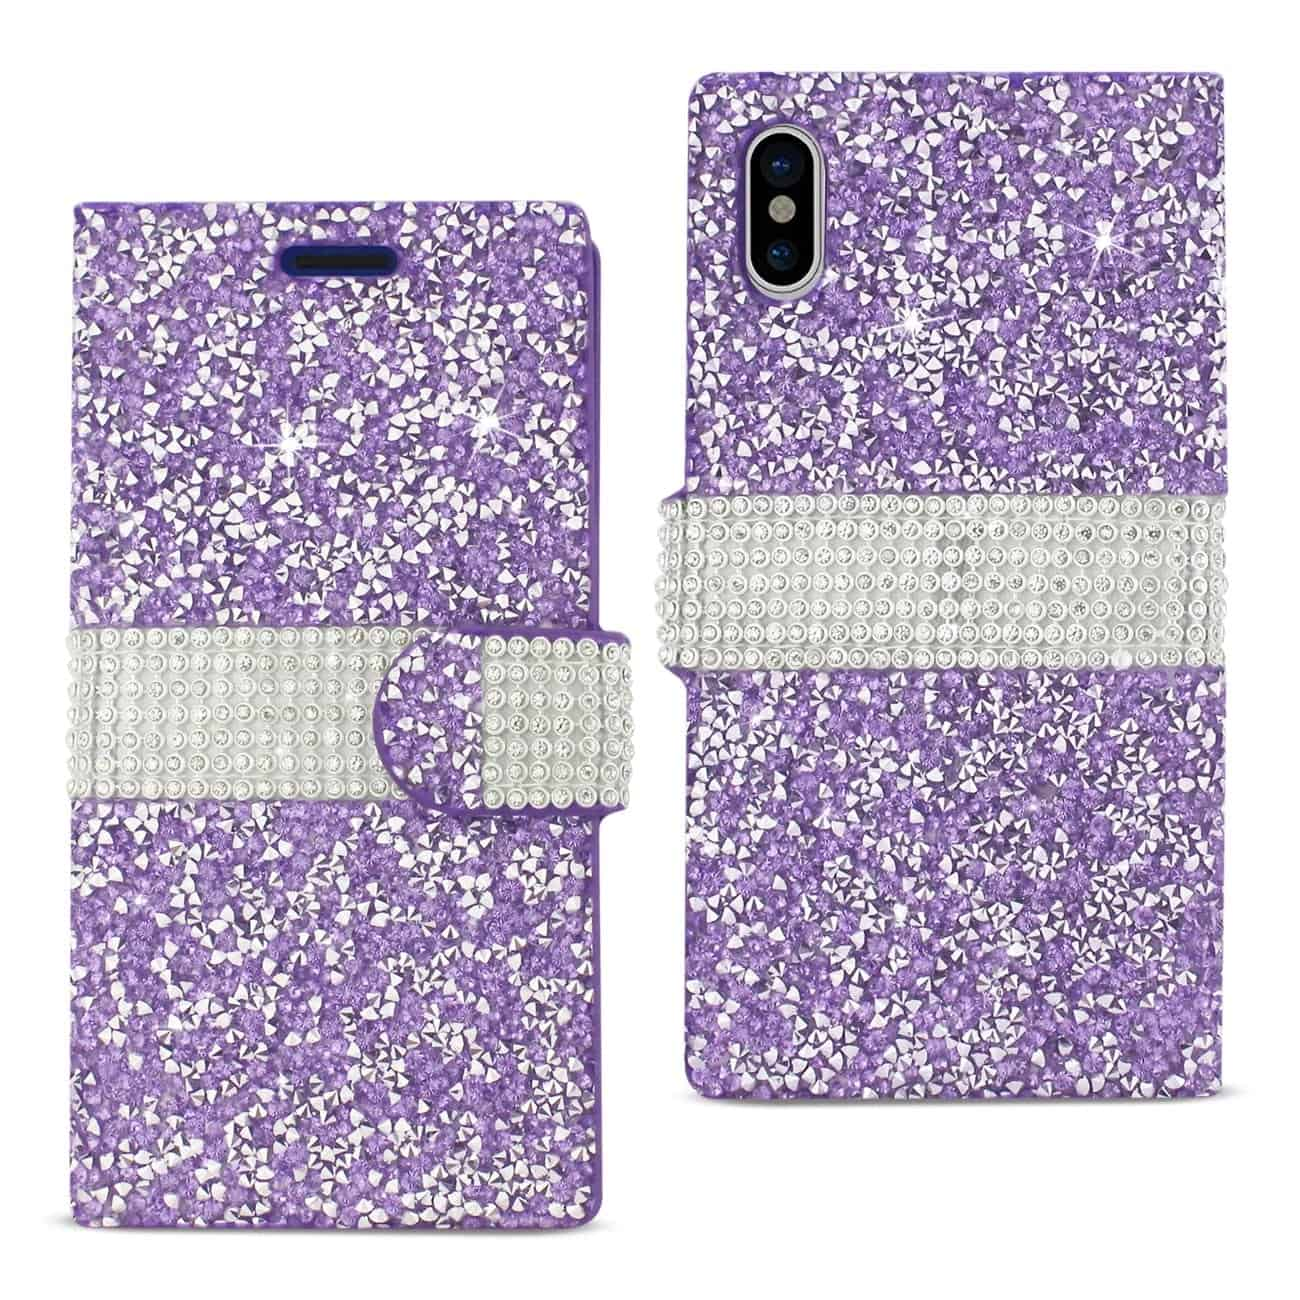 IPHONE X DIAMOND RHINESTONE WALLET CASE IN PURPLE